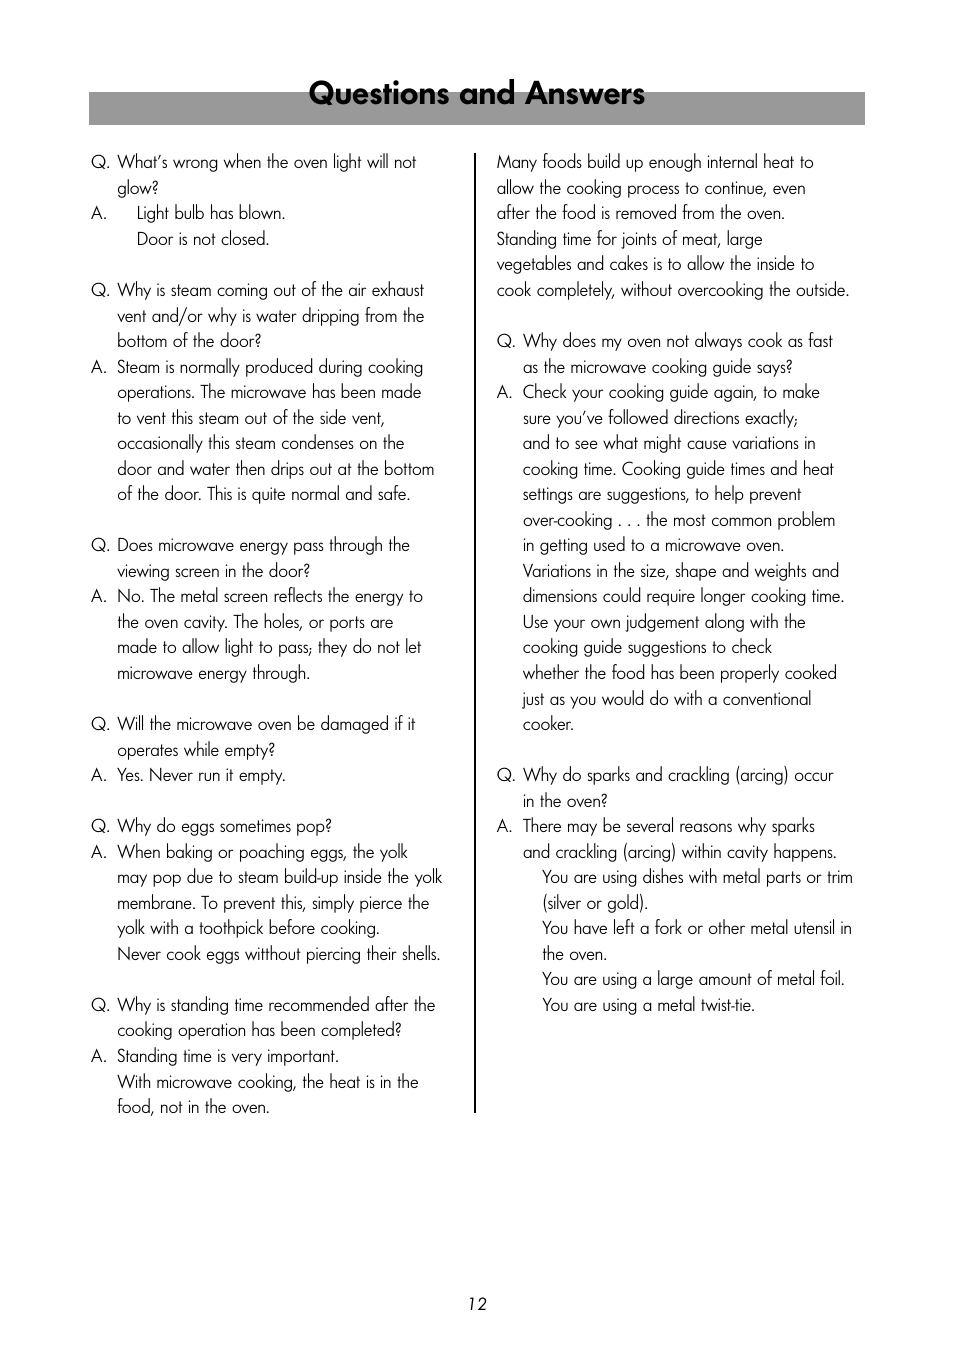 Questions and answers | LG MS-192W User Manual | Page 12 / 14